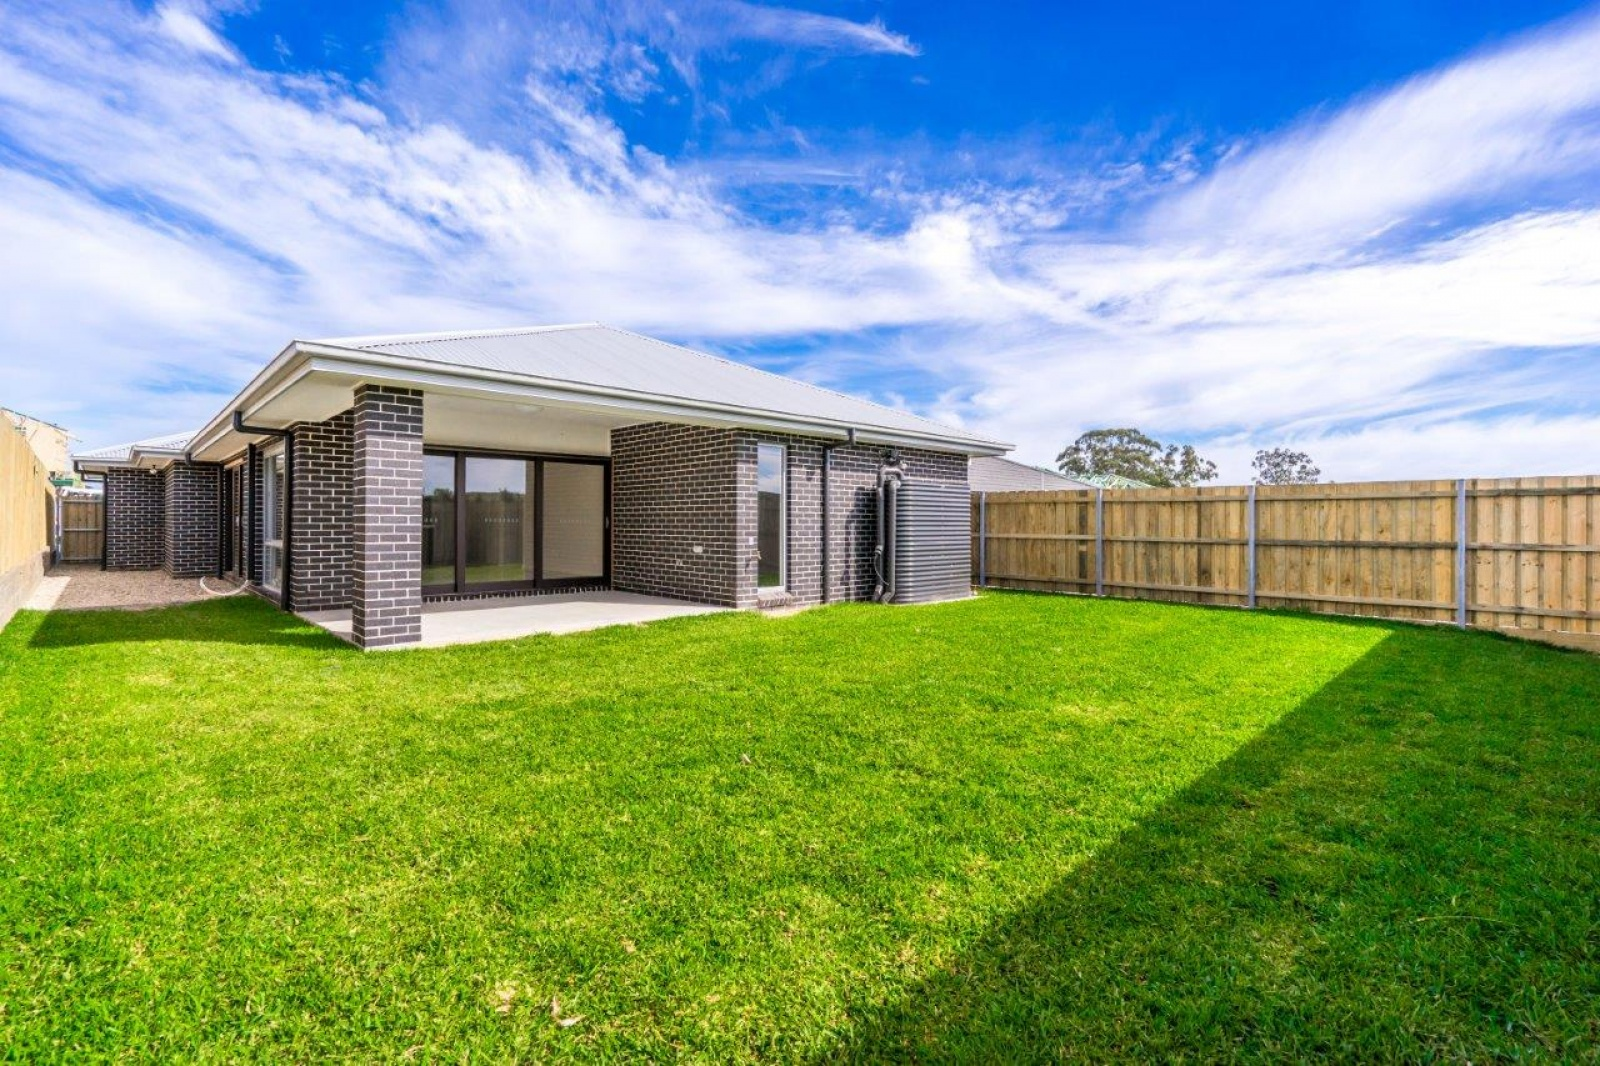 19 Casimer Ave,Elderslie,NSW,4 Bedrooms Bedrooms,2 BathroomsBathrooms,House,Casimer Ave,1015